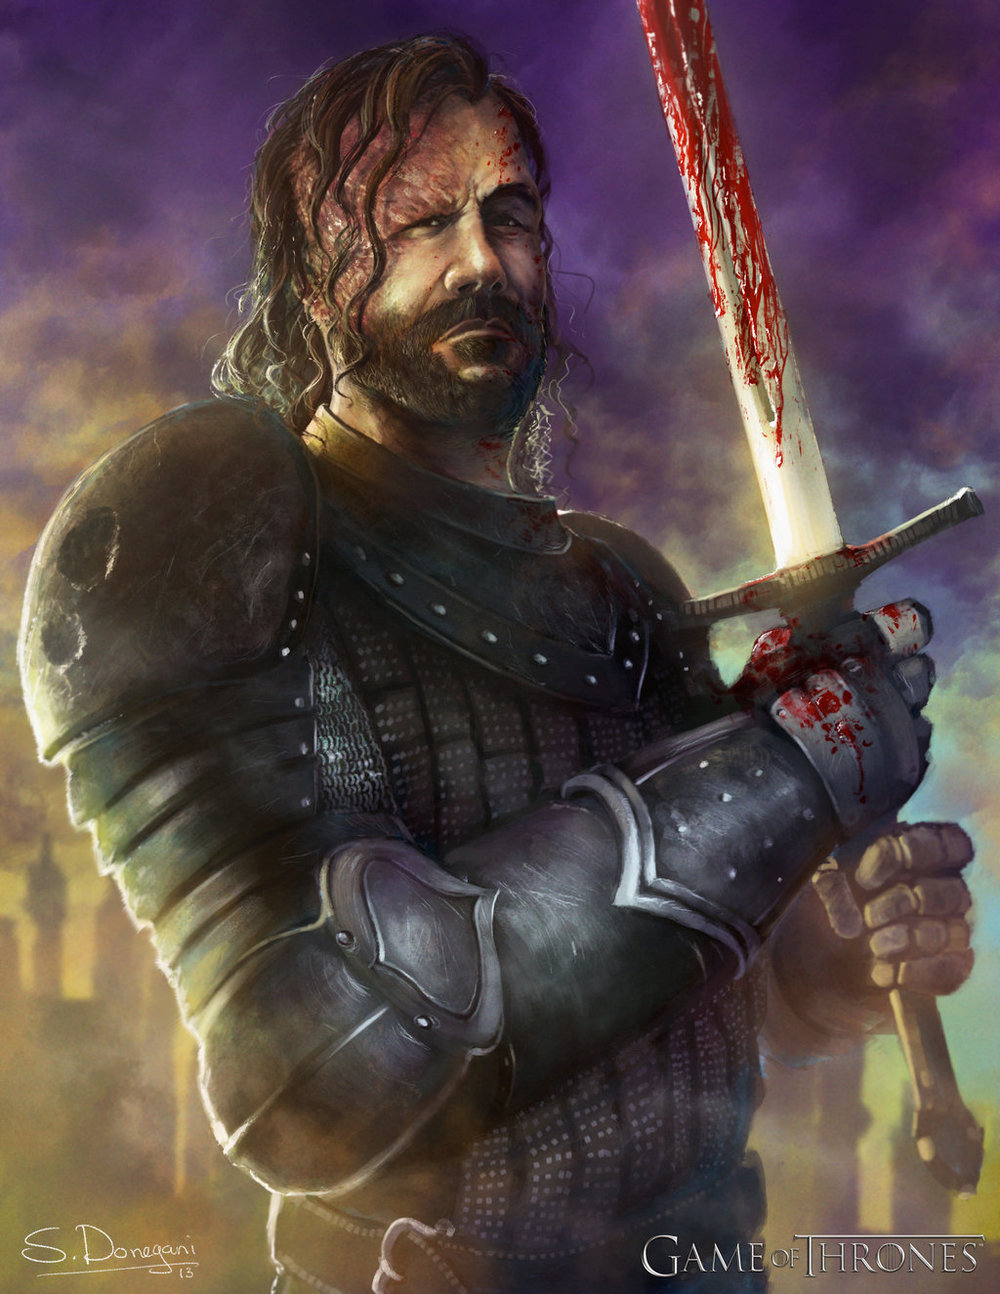 sandor_clegane___the_hound__game_of_thrones__by_steven_donegani-d66hhb4.jpg